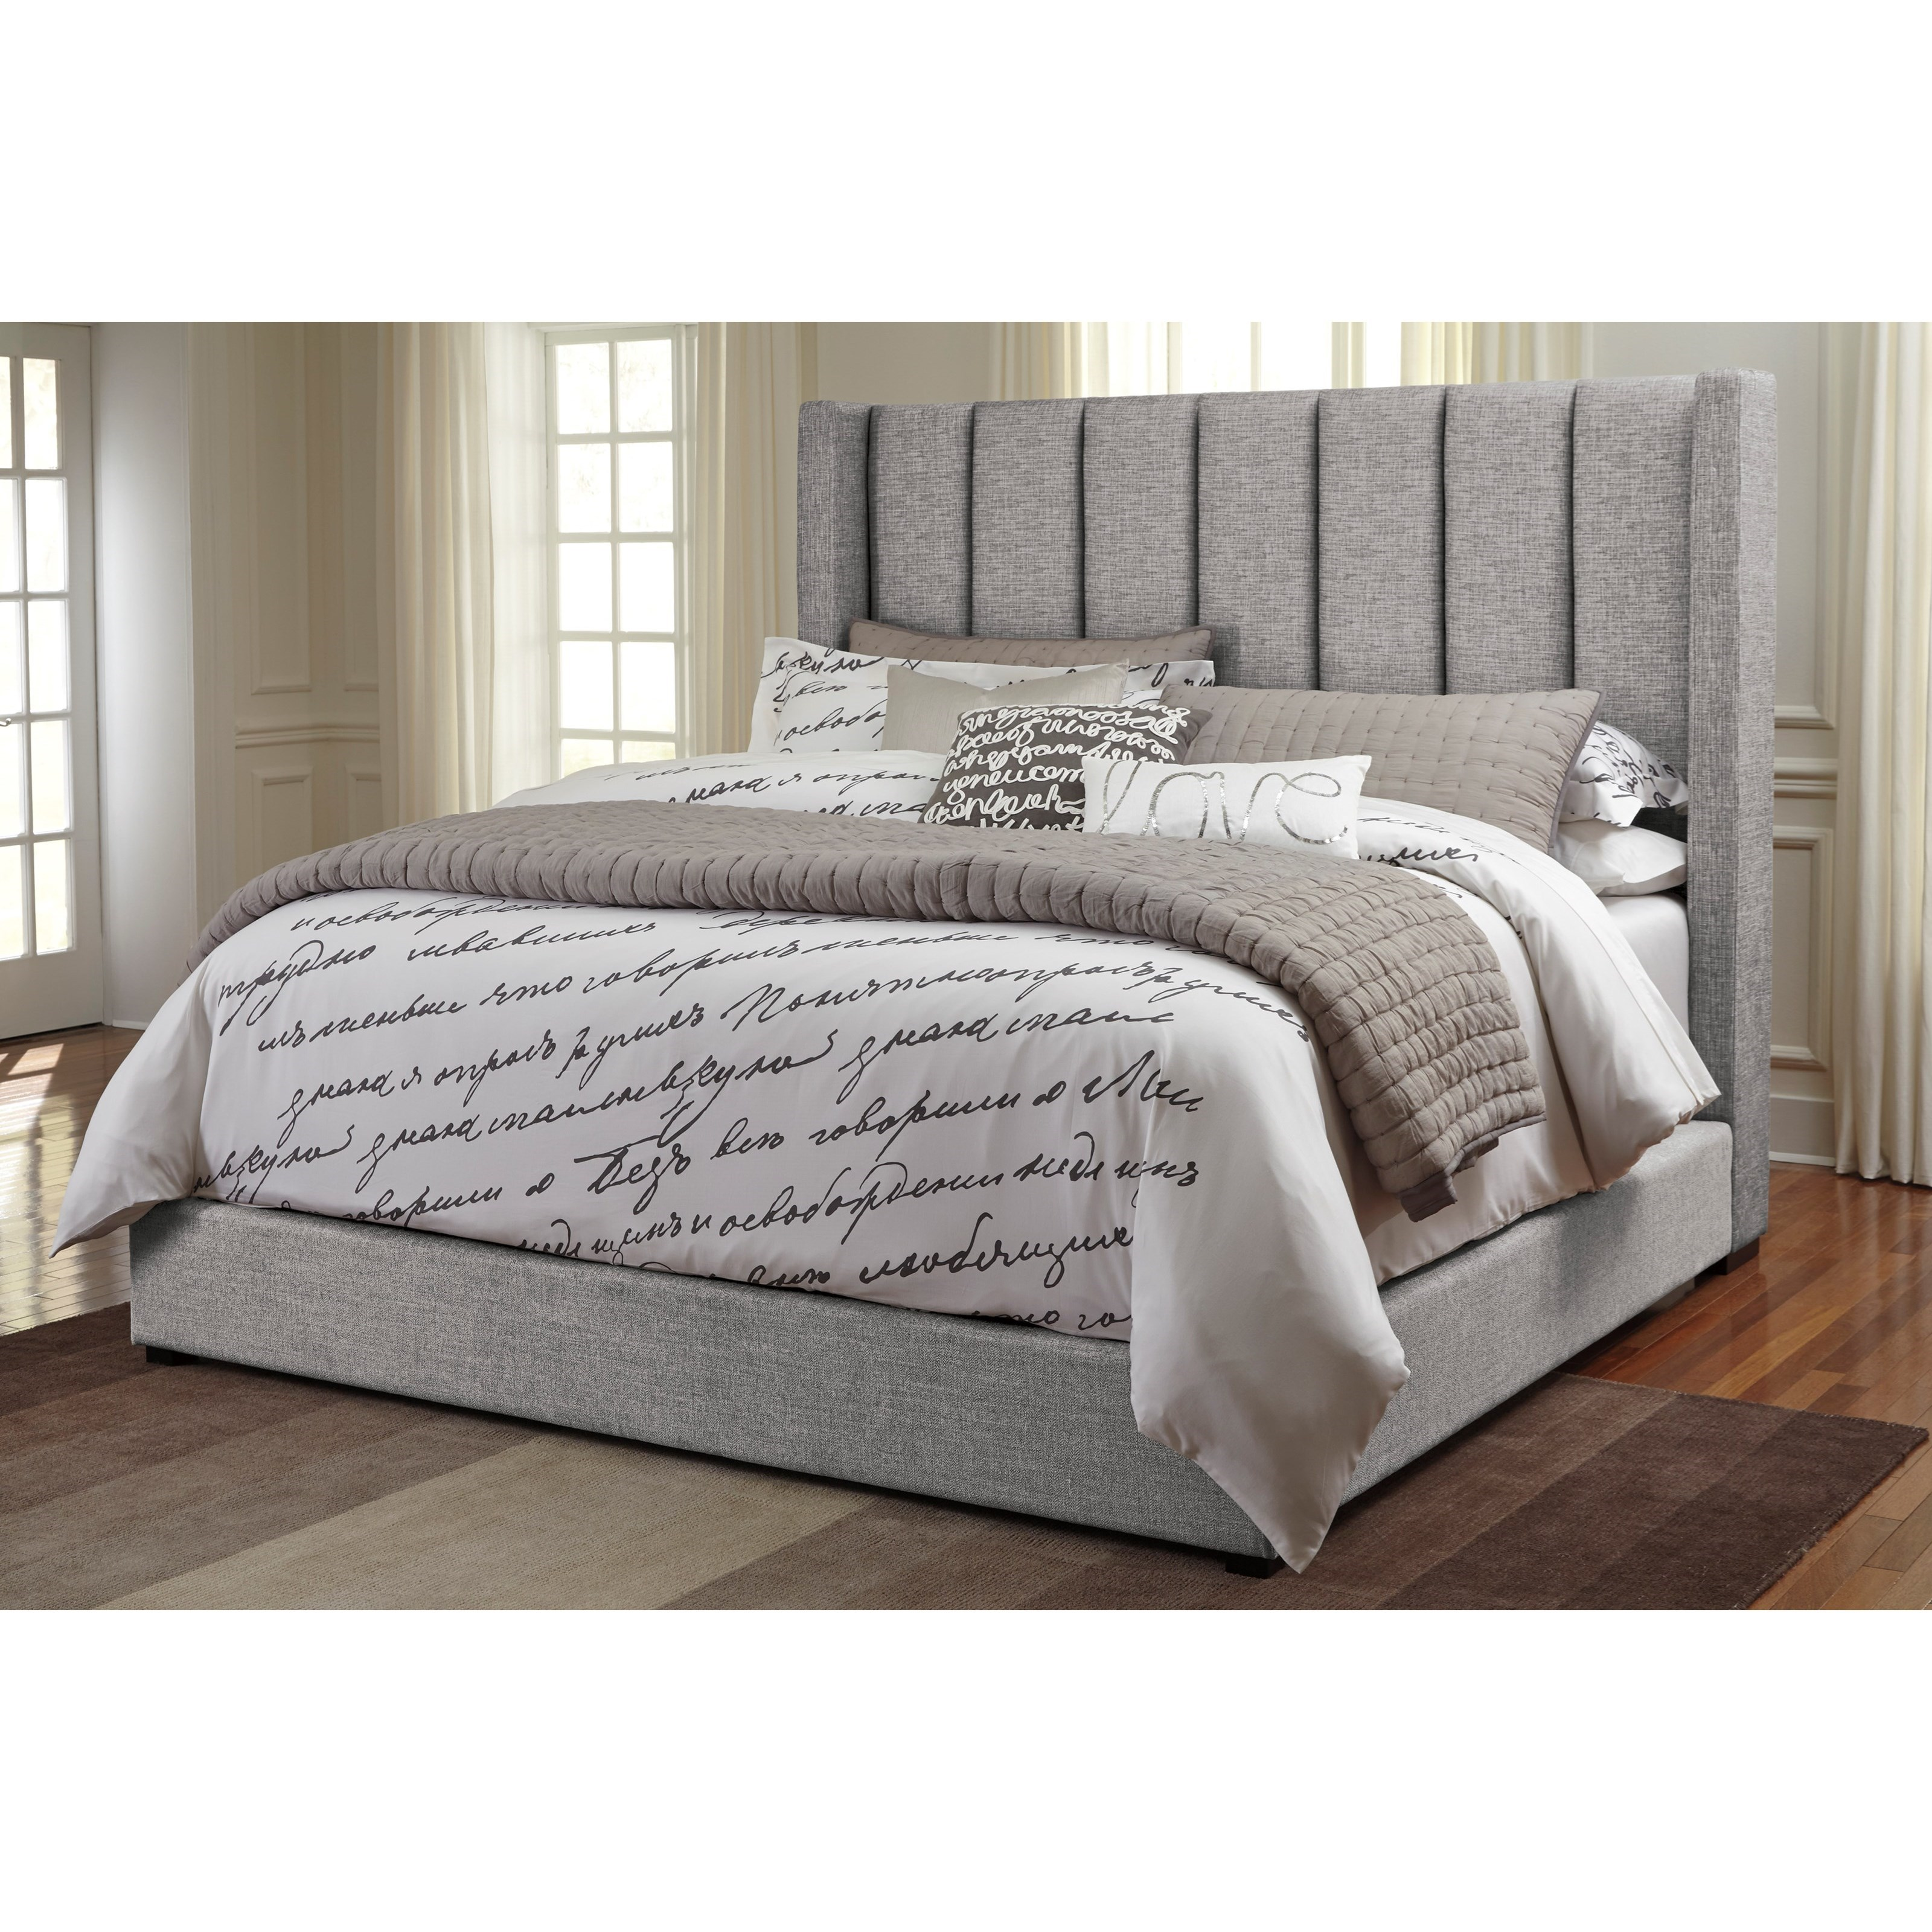 Signature Design by Ashley Kasidon Queen Upholstered Bed - Item Number: B600-877+874